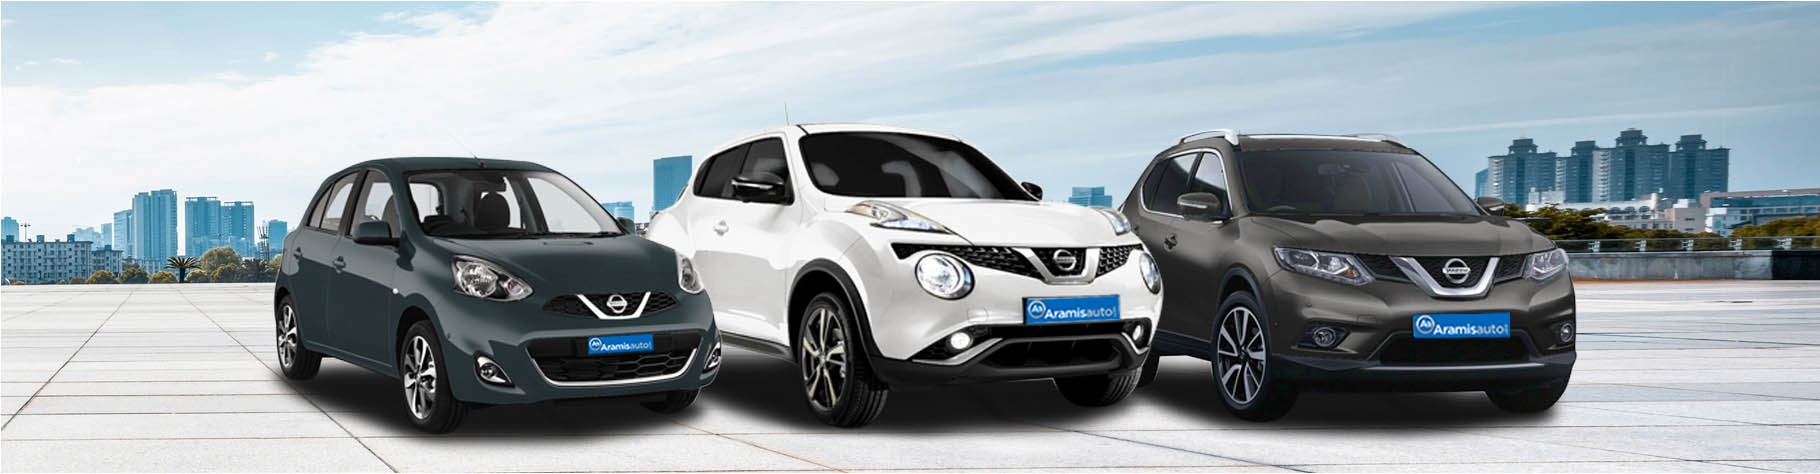 Guide d'achat Nissan